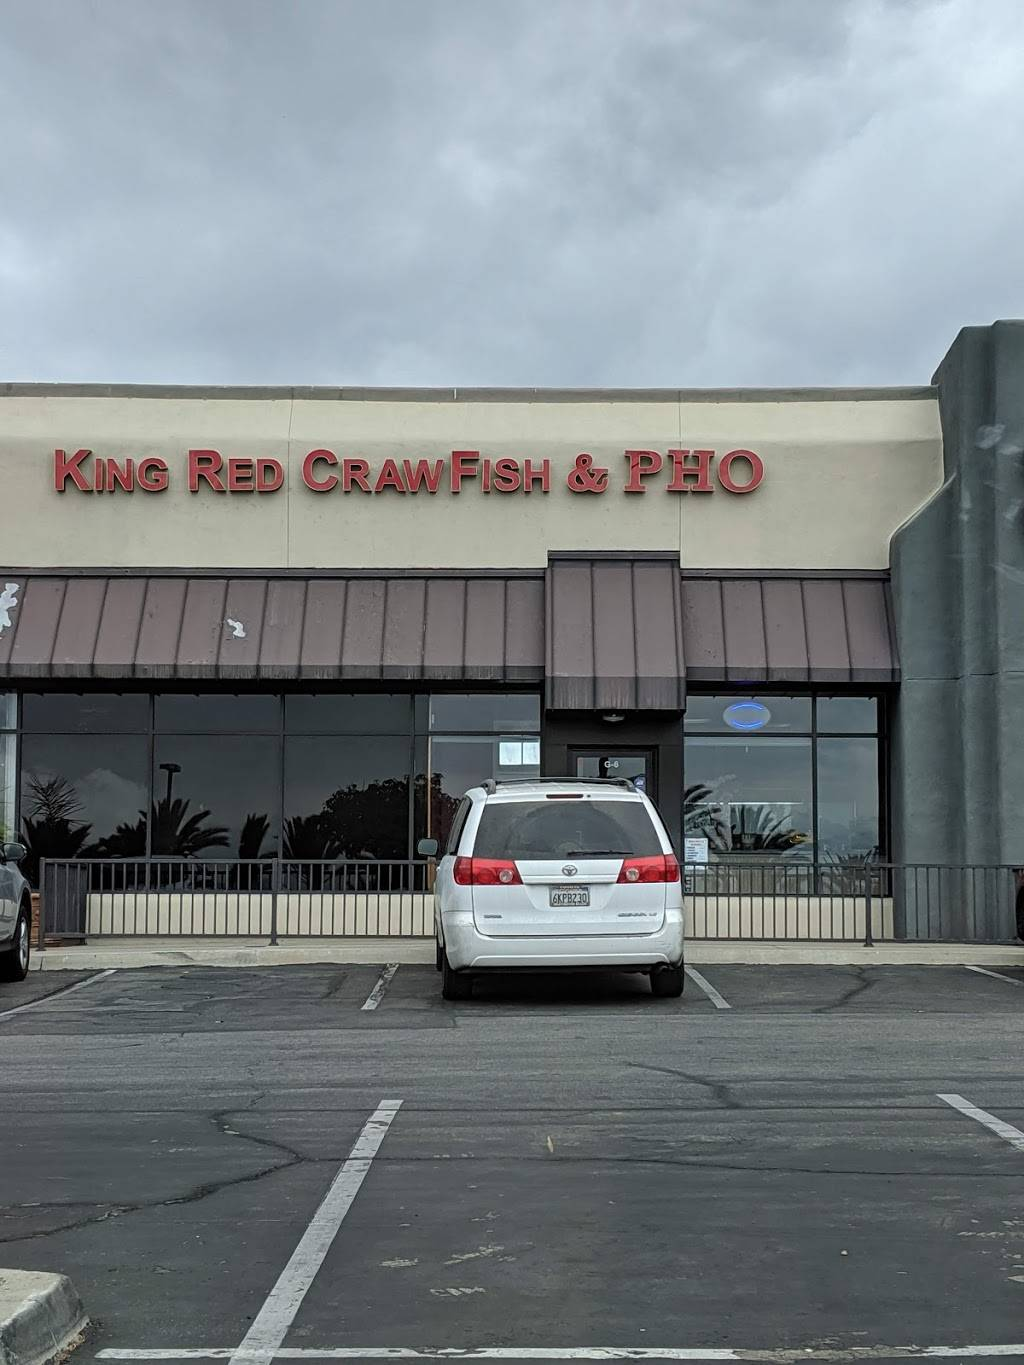 King Red Crawfish & Pho | restaurant | 400469 #G6, Murrieta, CA 92563, USA | 9513196230 OR +1 951-319-6230